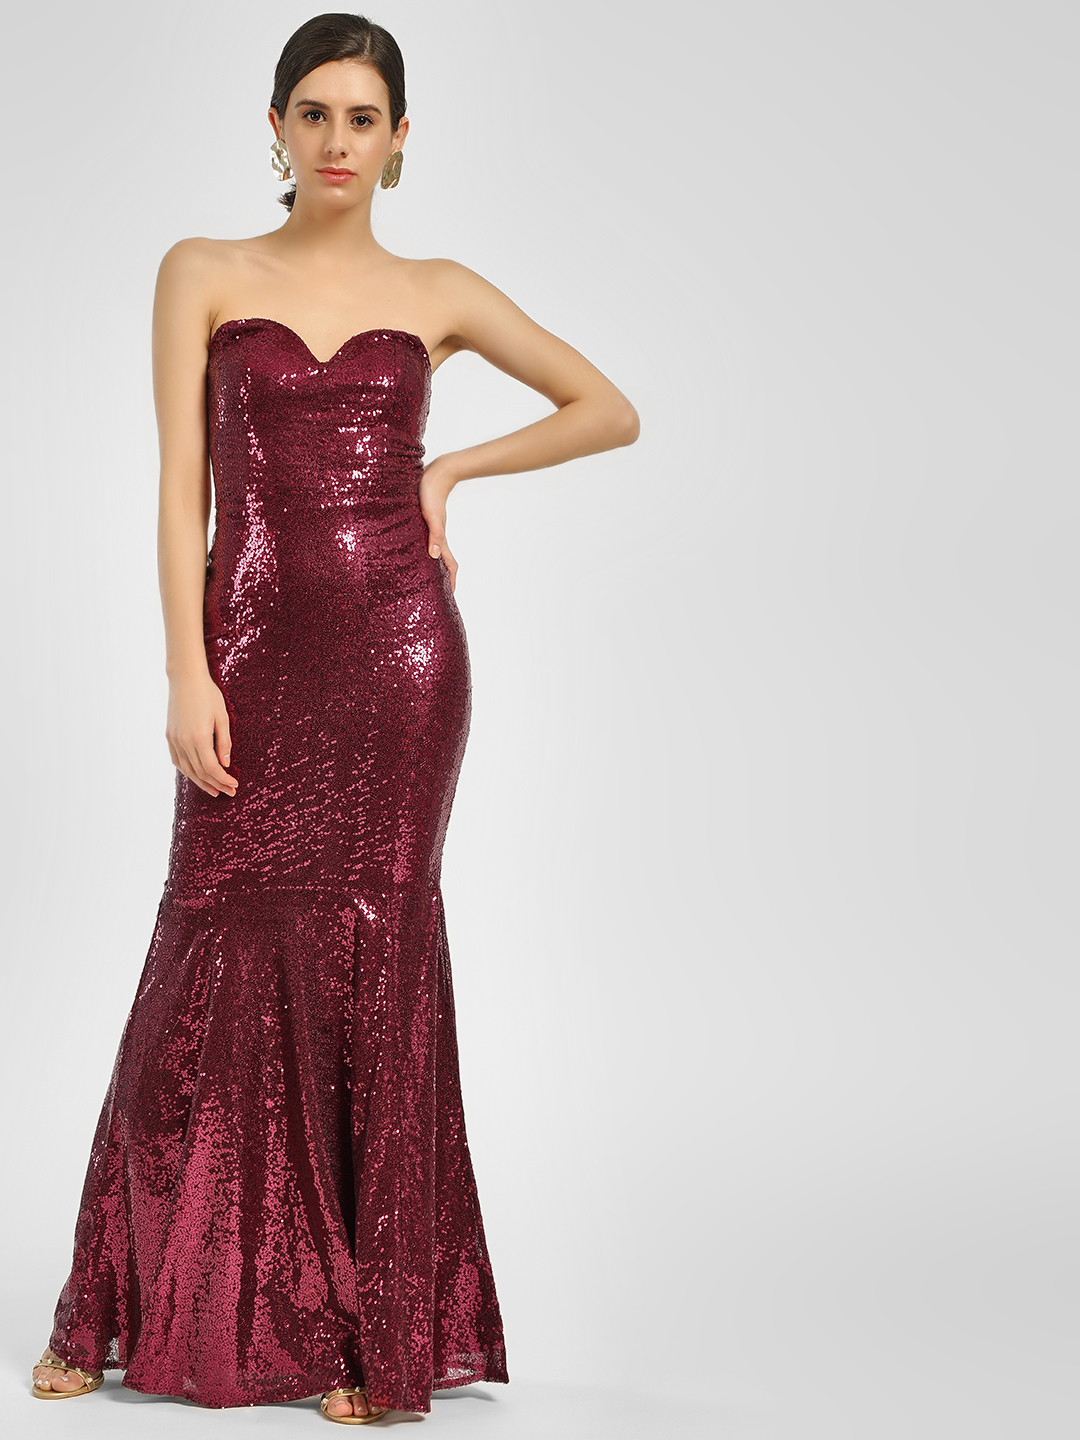 KOOVS Maroon Sequined Fishtail Maxi Dress 1